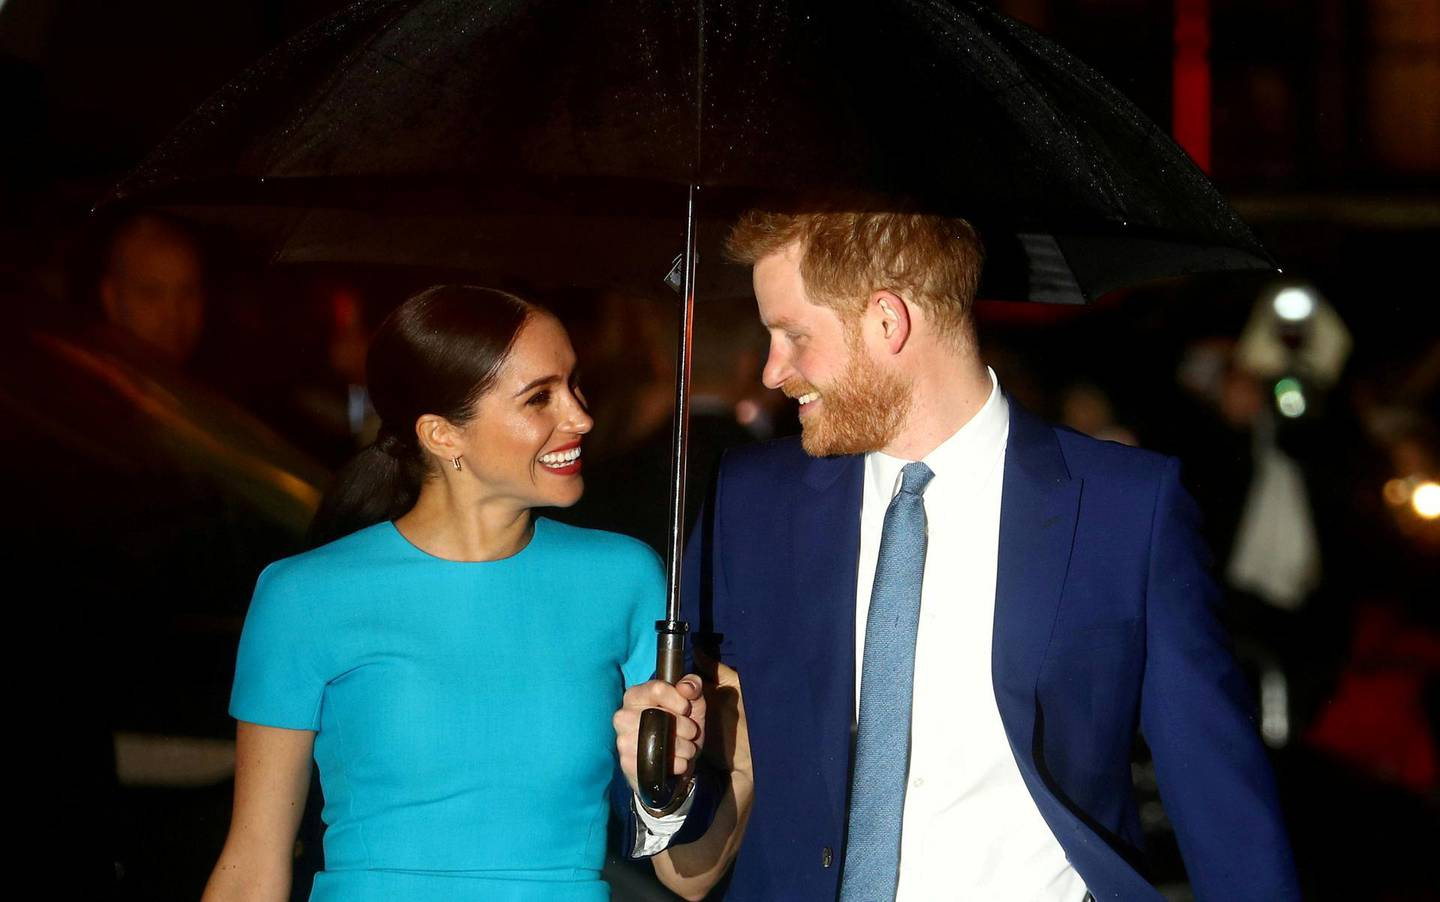 FILE PHOTO: Britain's Prince Harry and his wife Meghan, Duchess of Sussex, arrive at the Endeavour Fund Awards in London, Britain, March 5, 2020. REUTERS/Hannah McKay/File Photo/File Photo